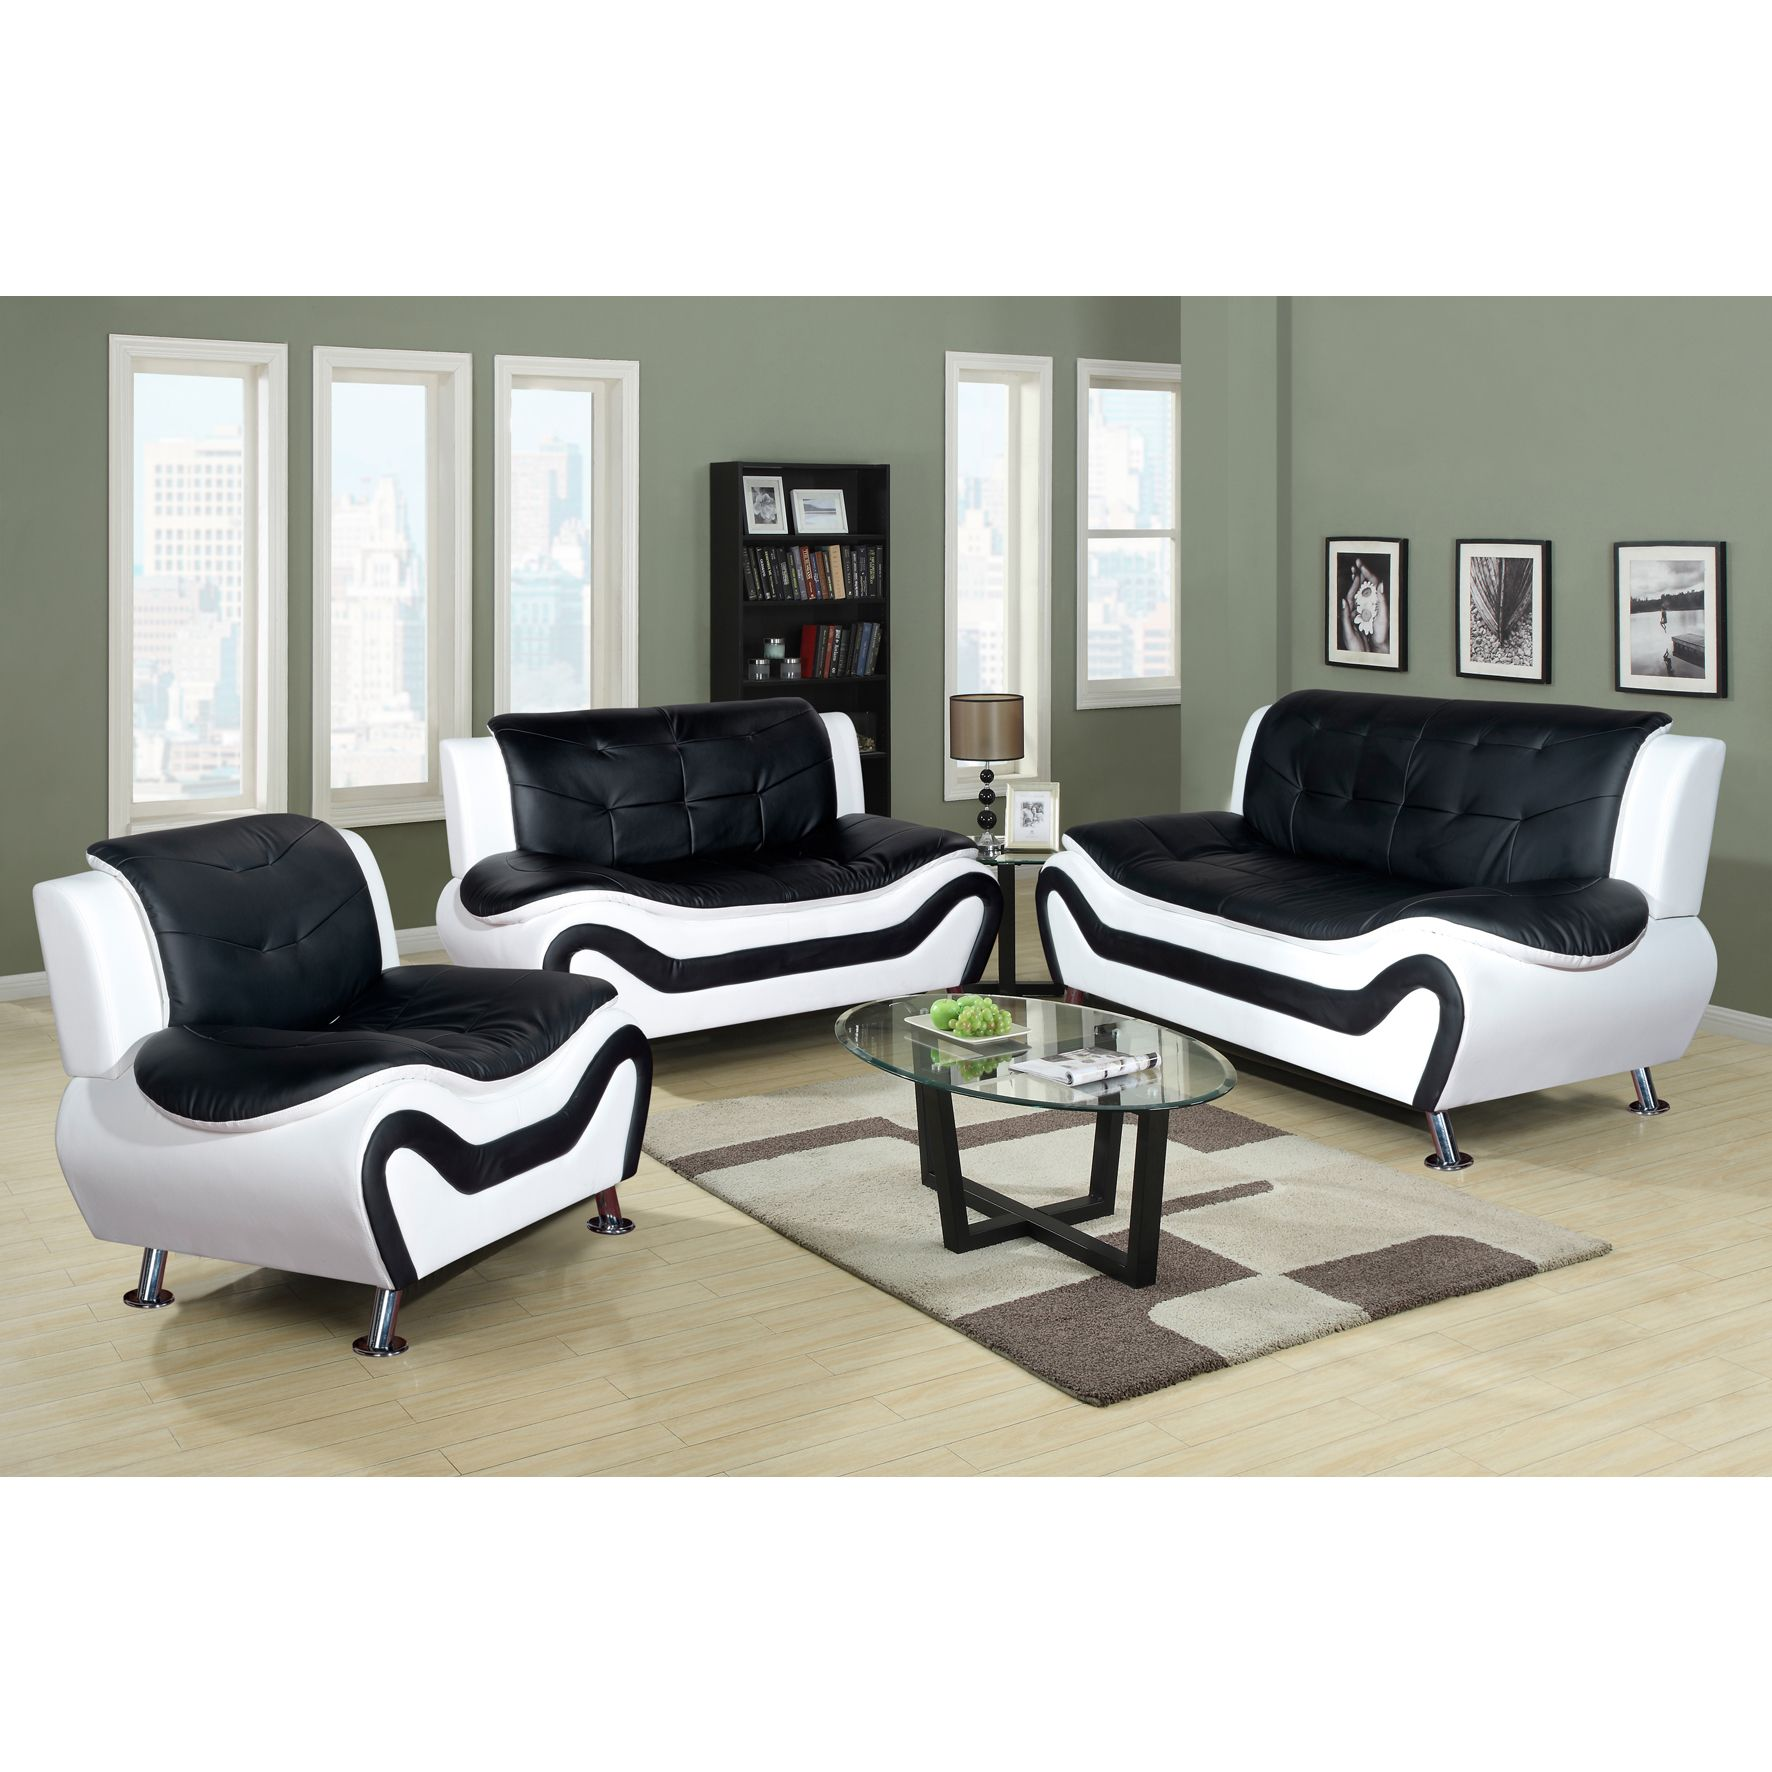 Arm Chairs Living Room Furniture Sets For Less